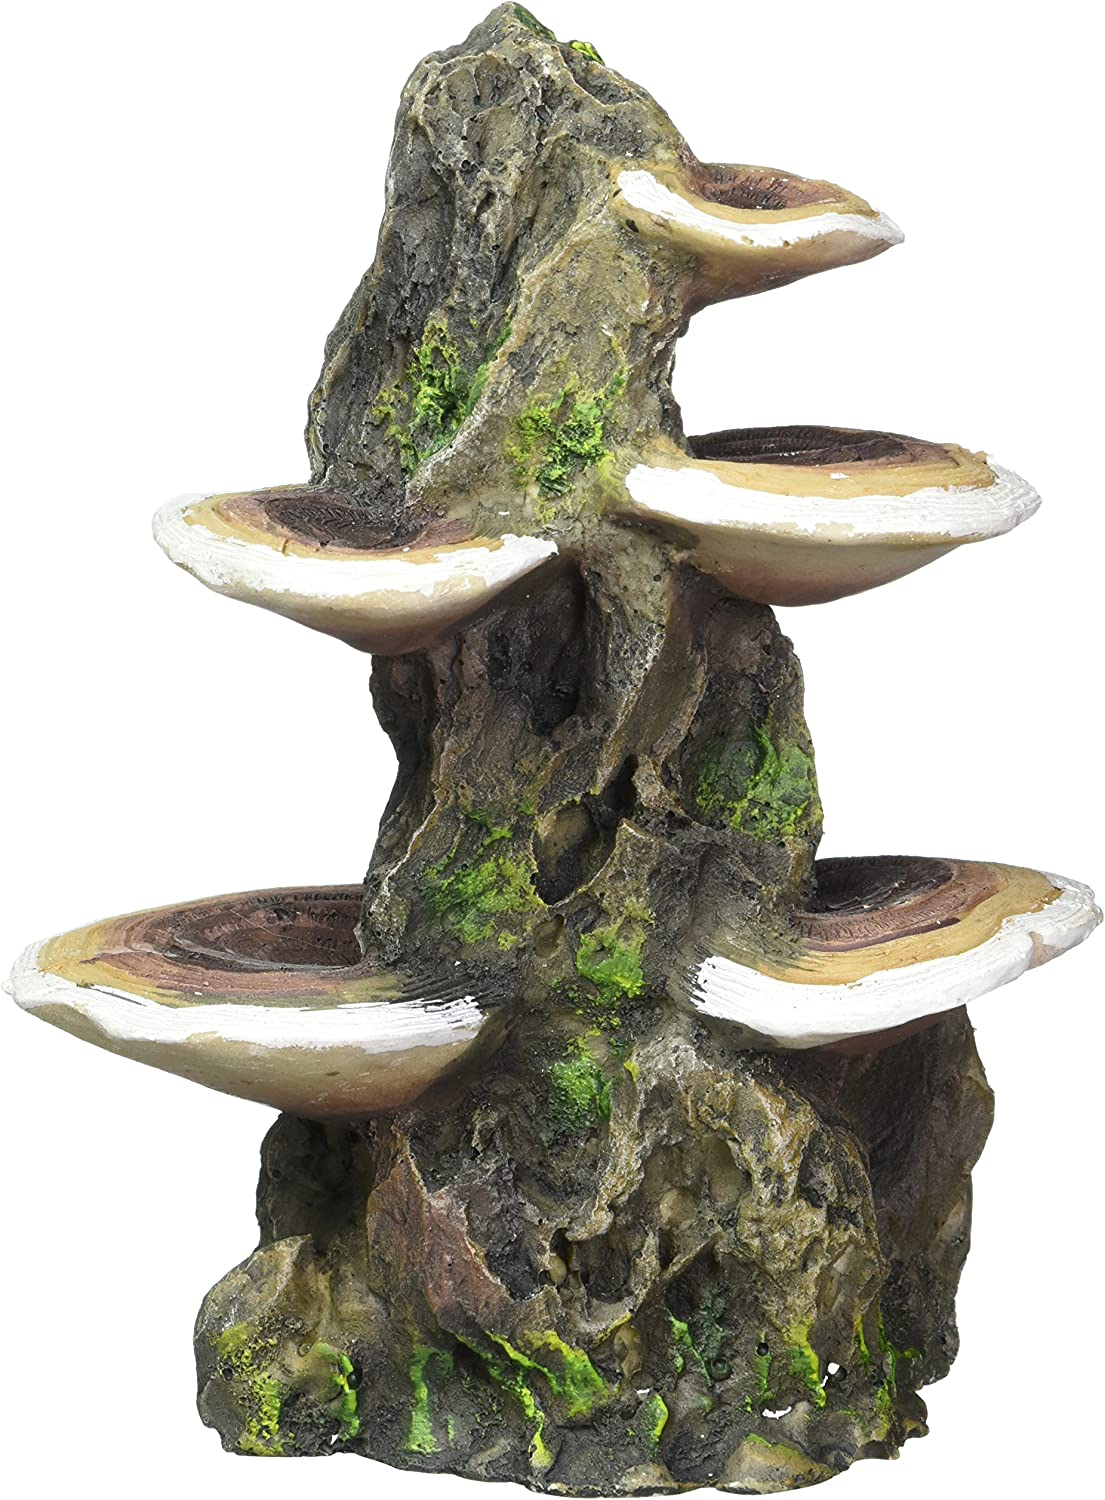 "Pen Plax RR1007 Mushrooms on Rock Aquarium Ornament, Medium/5.5"" x 4"" x 7.5"""